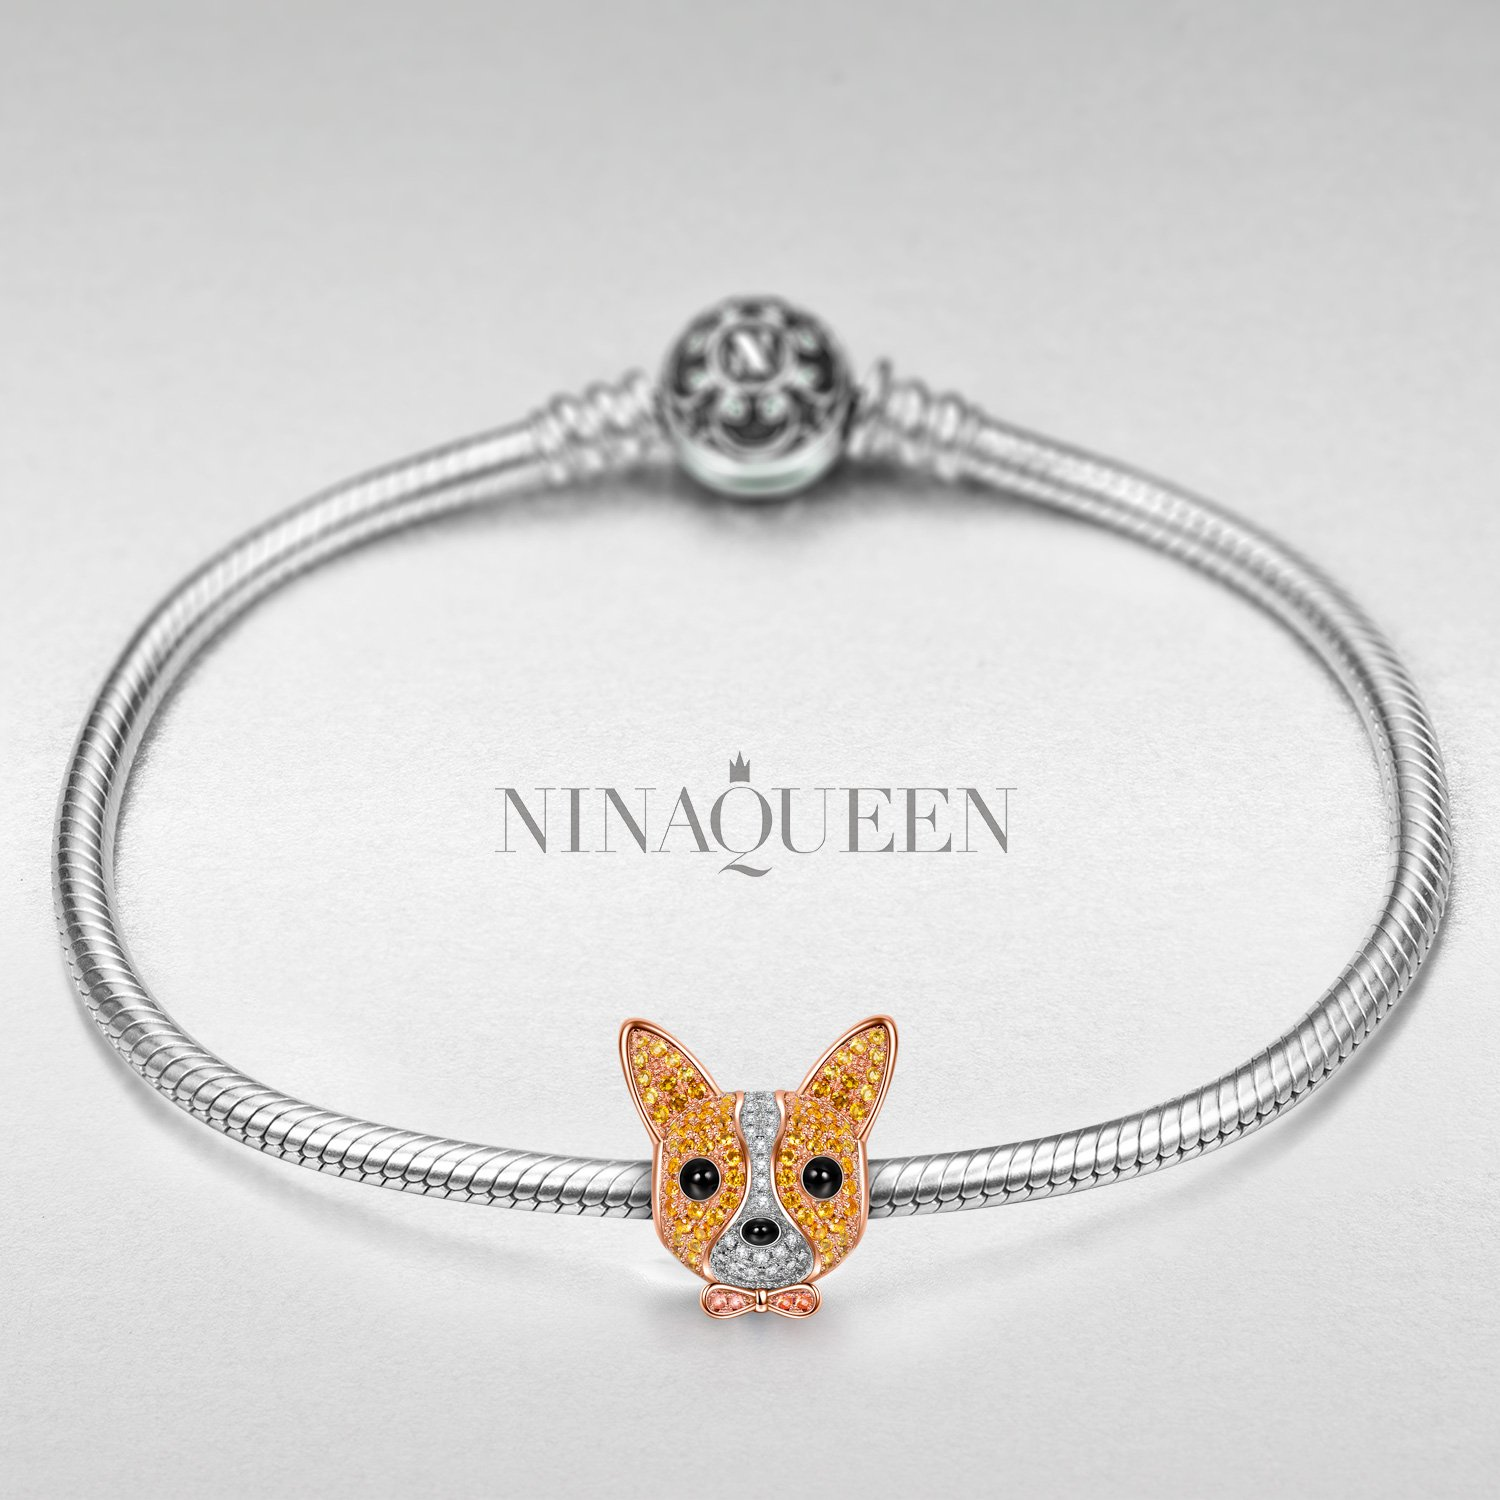 NINAQUEEN Chihuahua 925 Sterling Silver Puppy Dog Animal Bead Charm with Cubic Zirconia for Pandöra Charms Bracelet Jewelry Accessory Birthday for Teen Girls Kids Her Women Wife Mom by NINAQUEEN (Image #3)